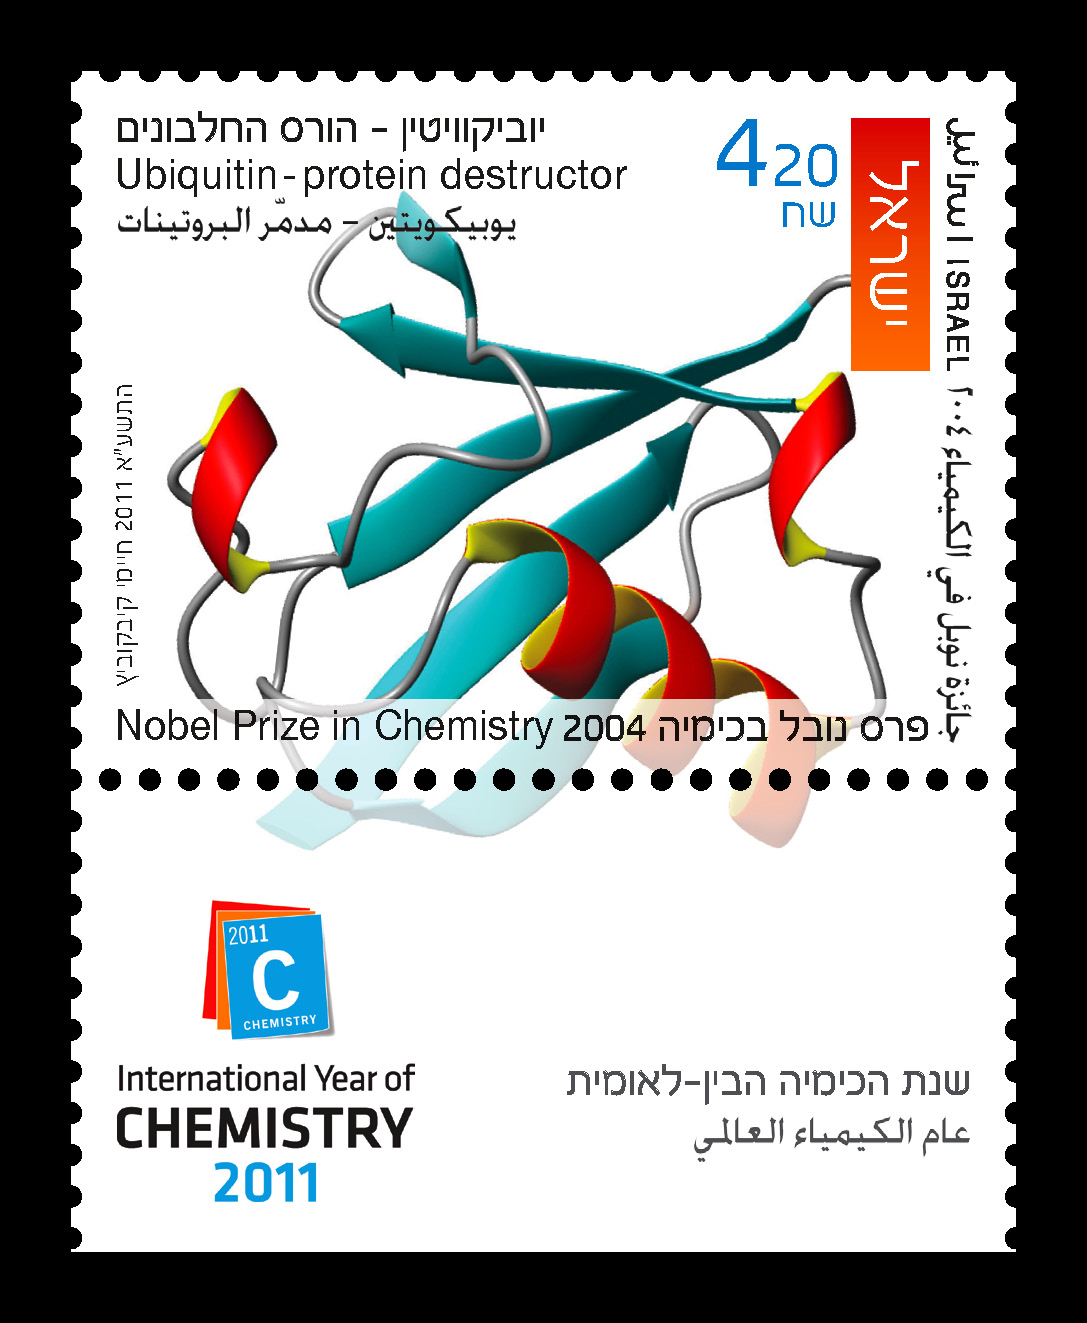 Israel post – international year of chemistry 2011